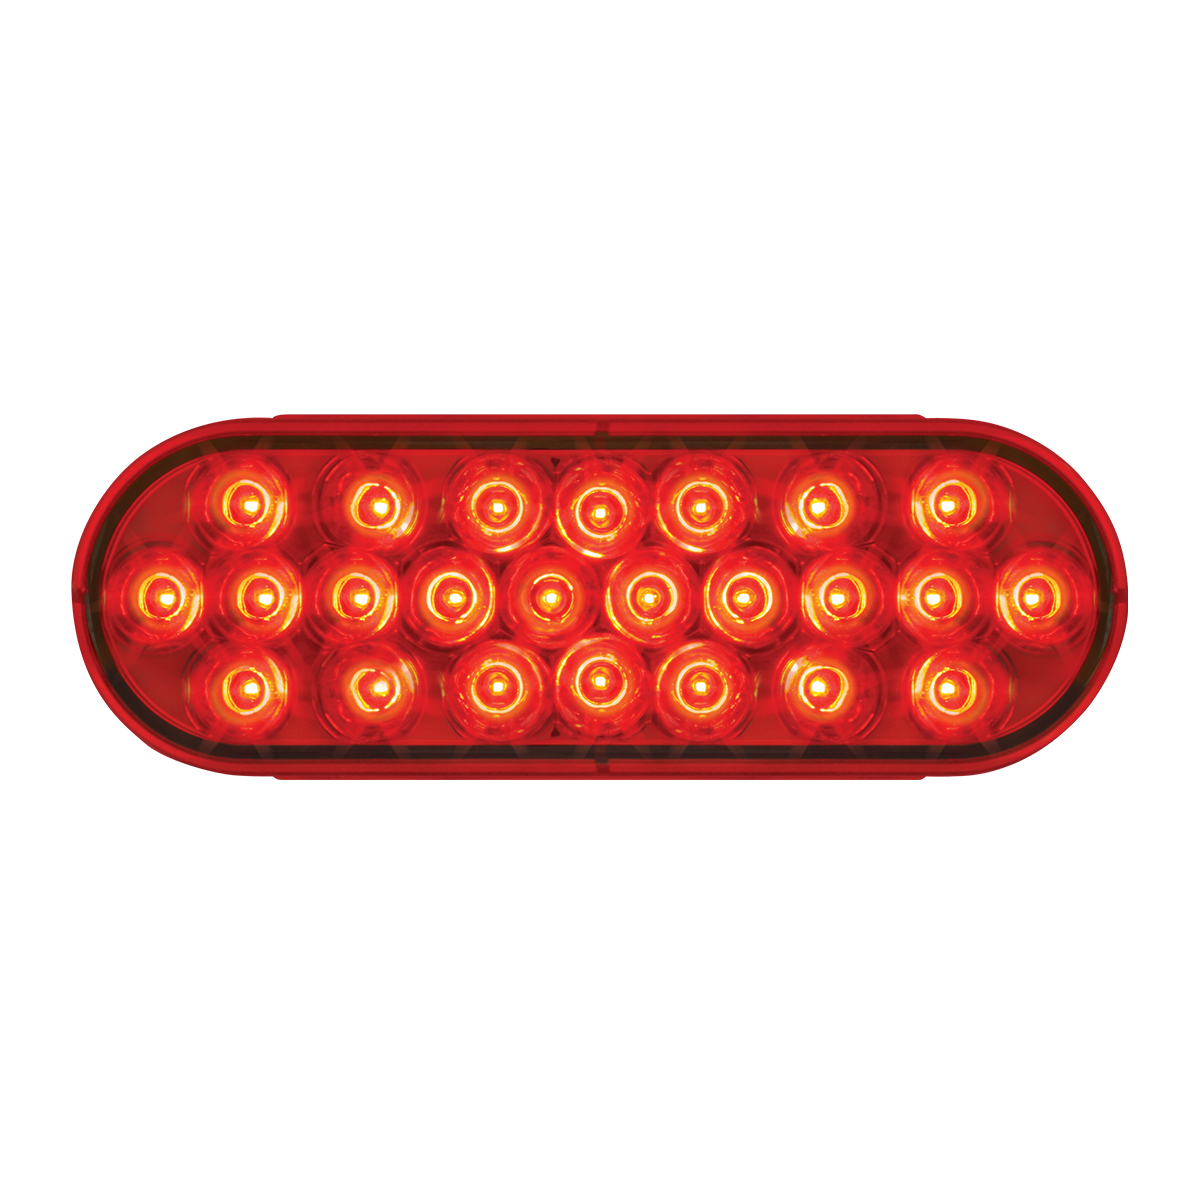 #78233 Oval Pearl LED Flat Red/Red Light - Slanted